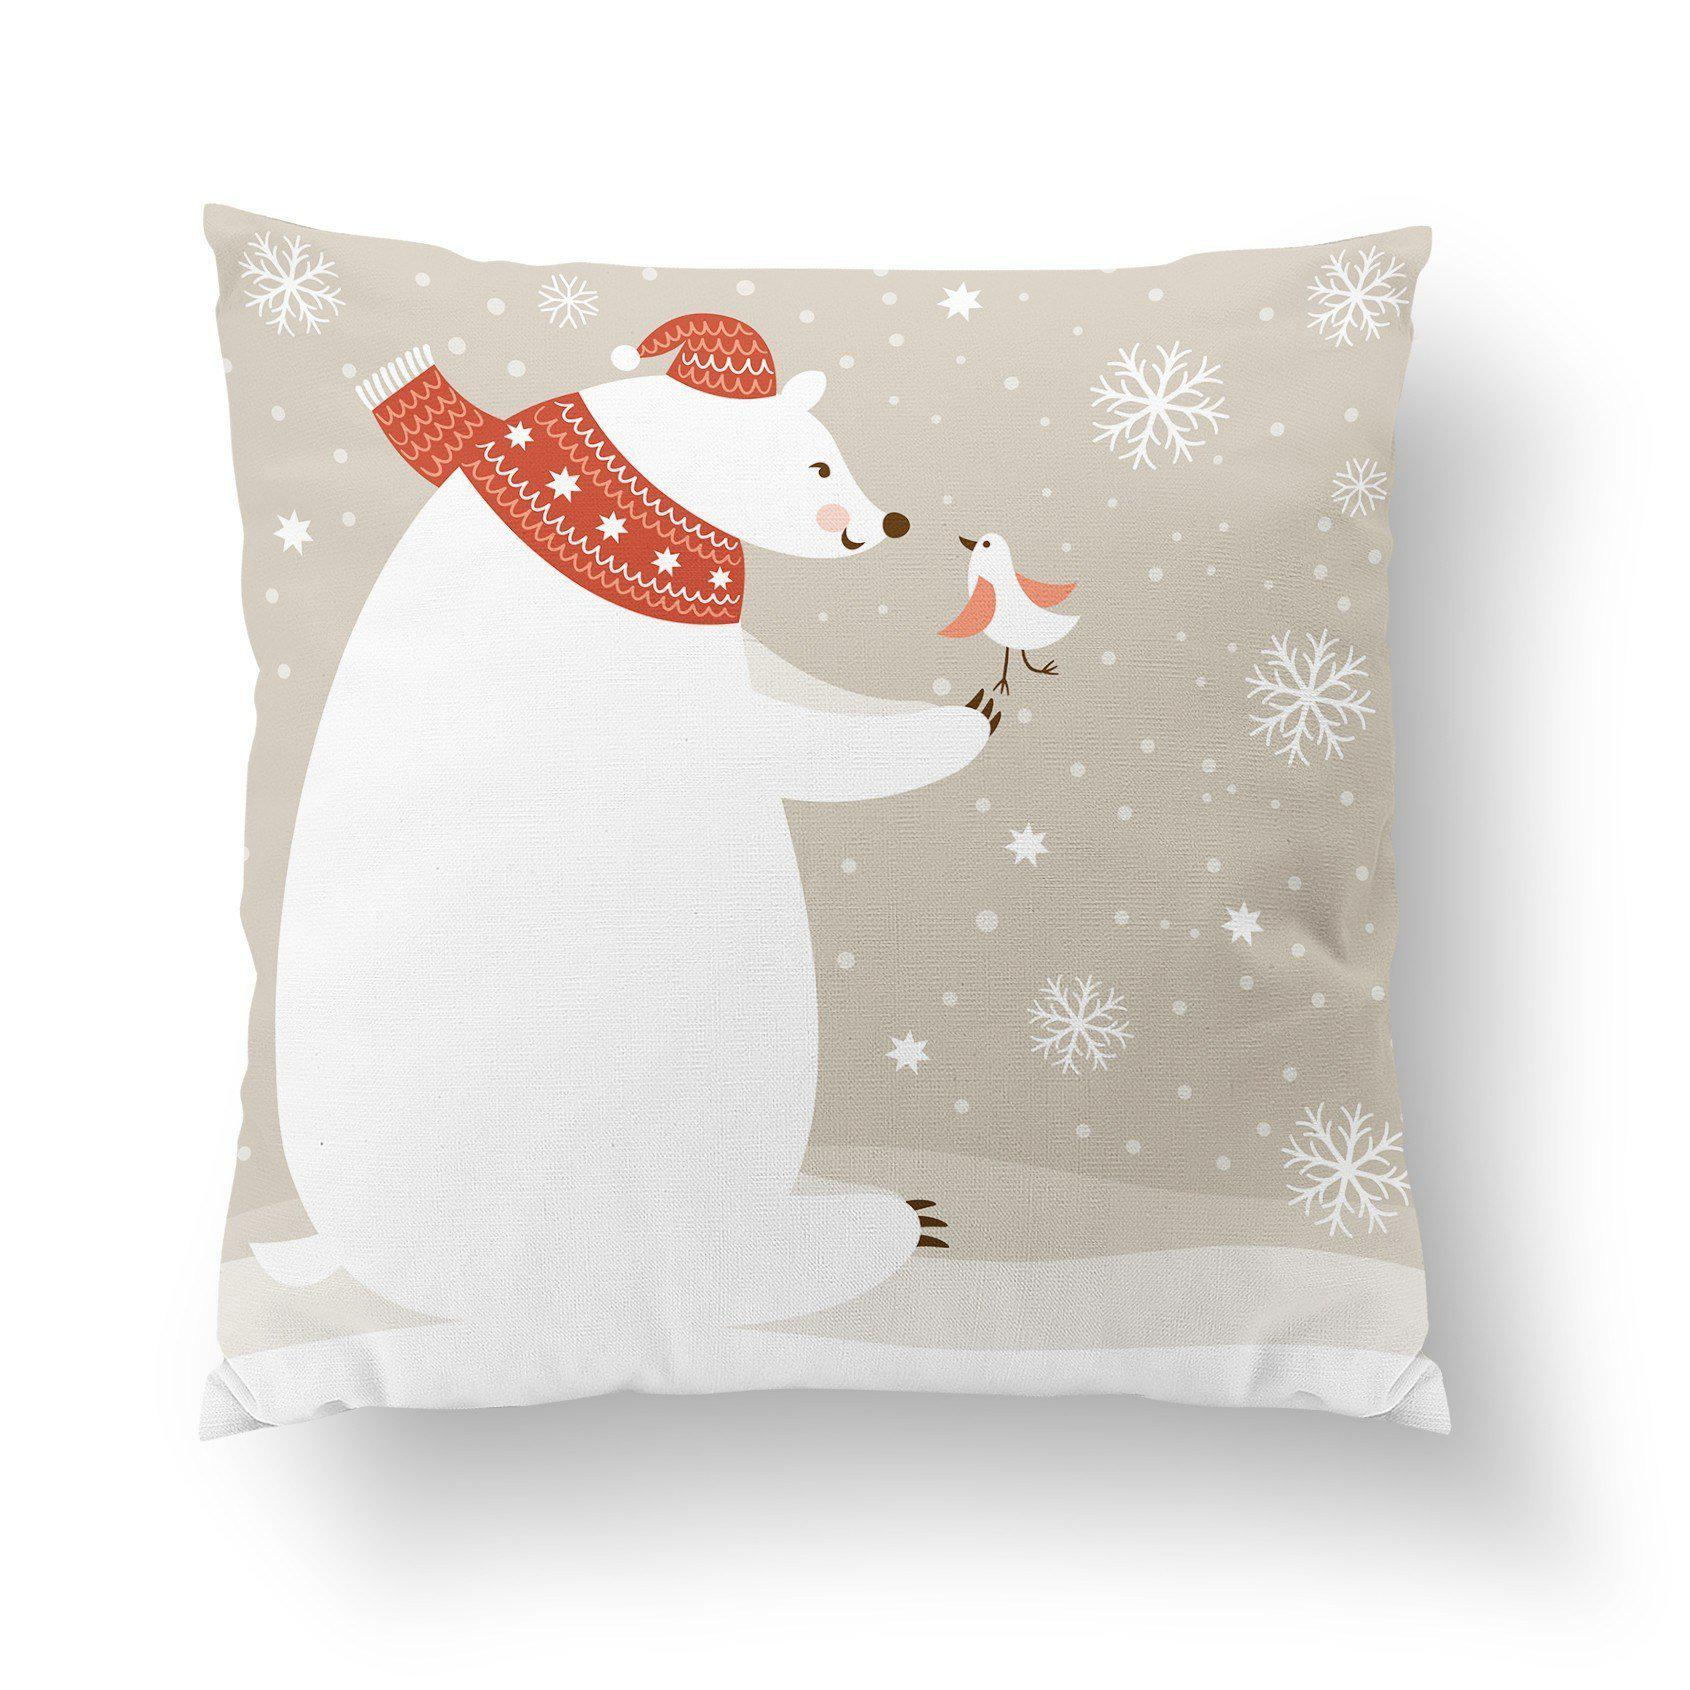 Winter Pillow - Pillow Covers - W.FRANCIS